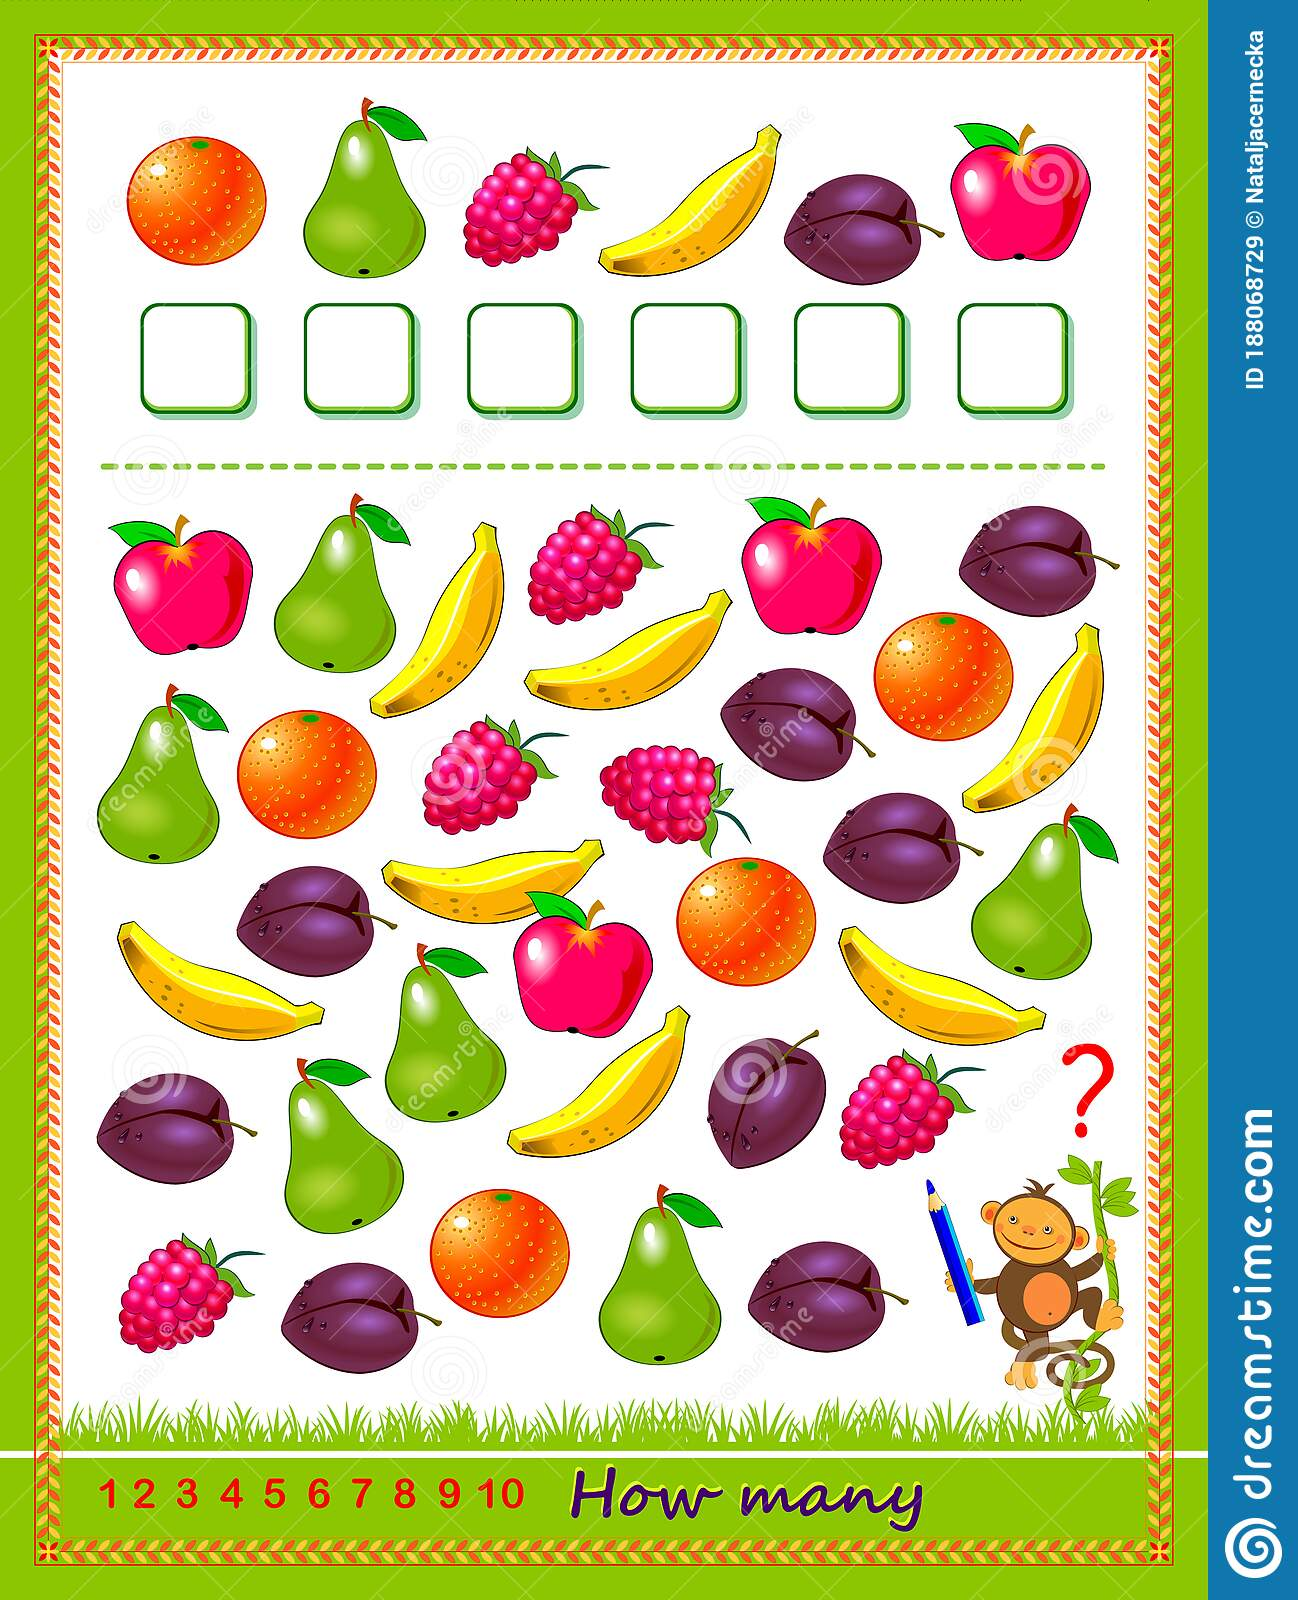 Math Education For Children Count Quantity Of Fruits And